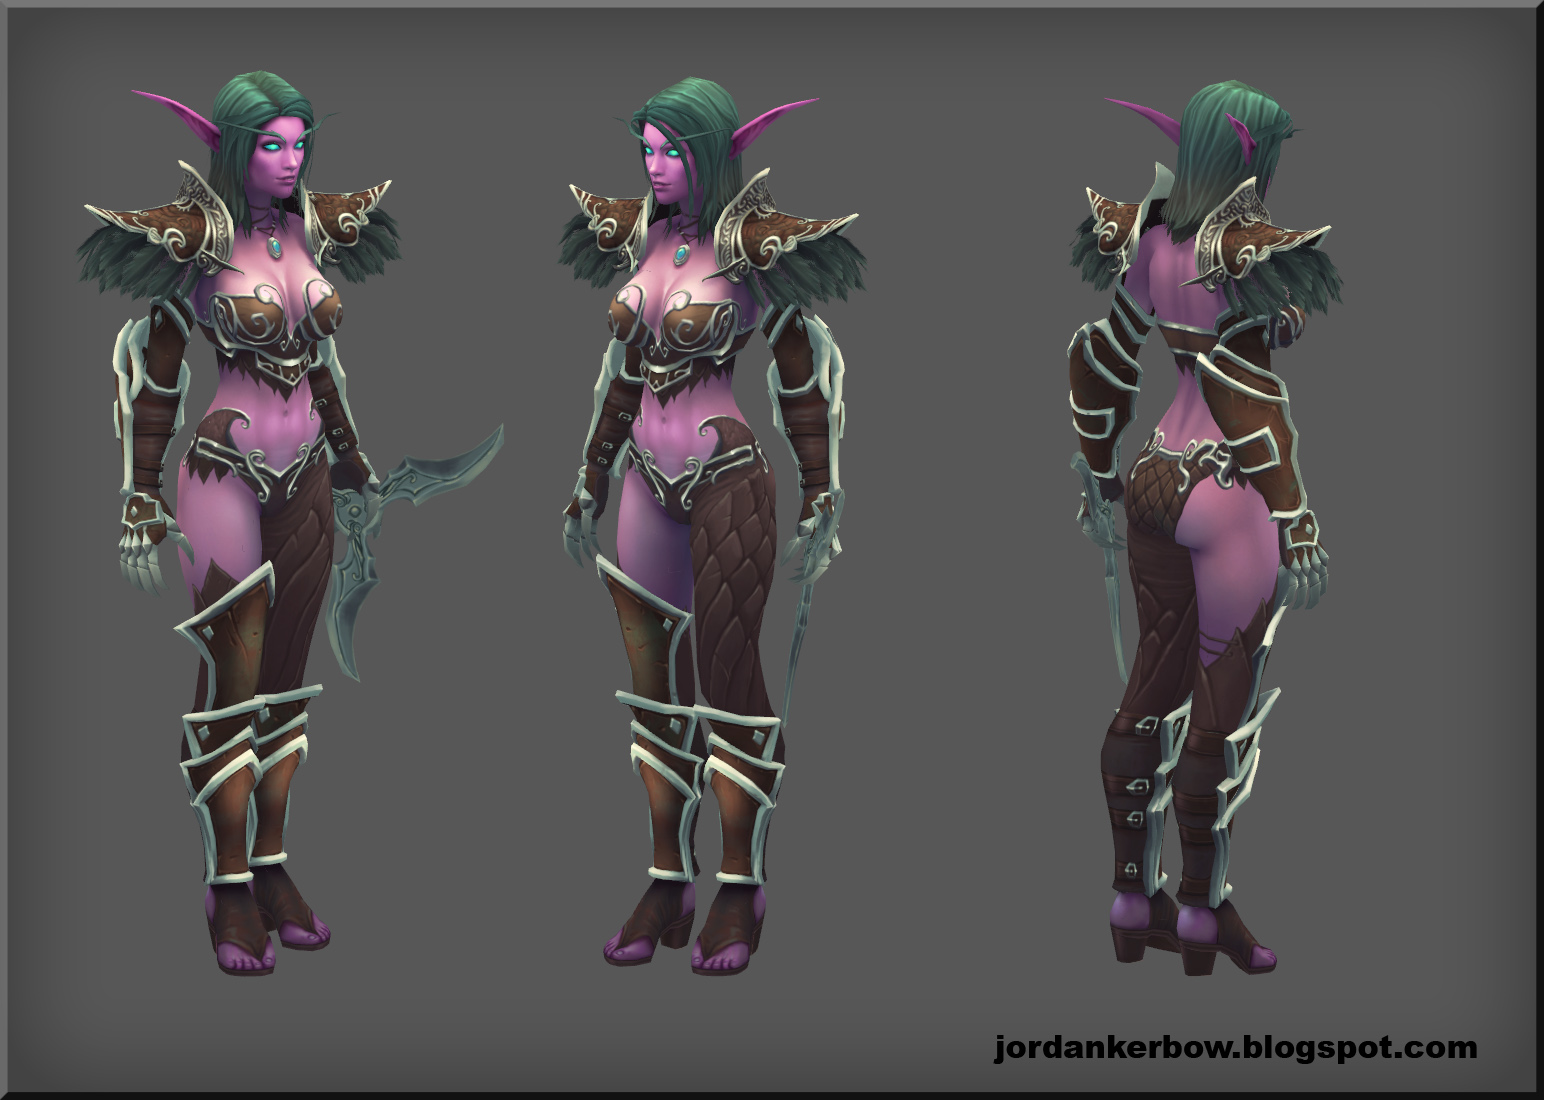 nightelf by jordankerbow on deviantart